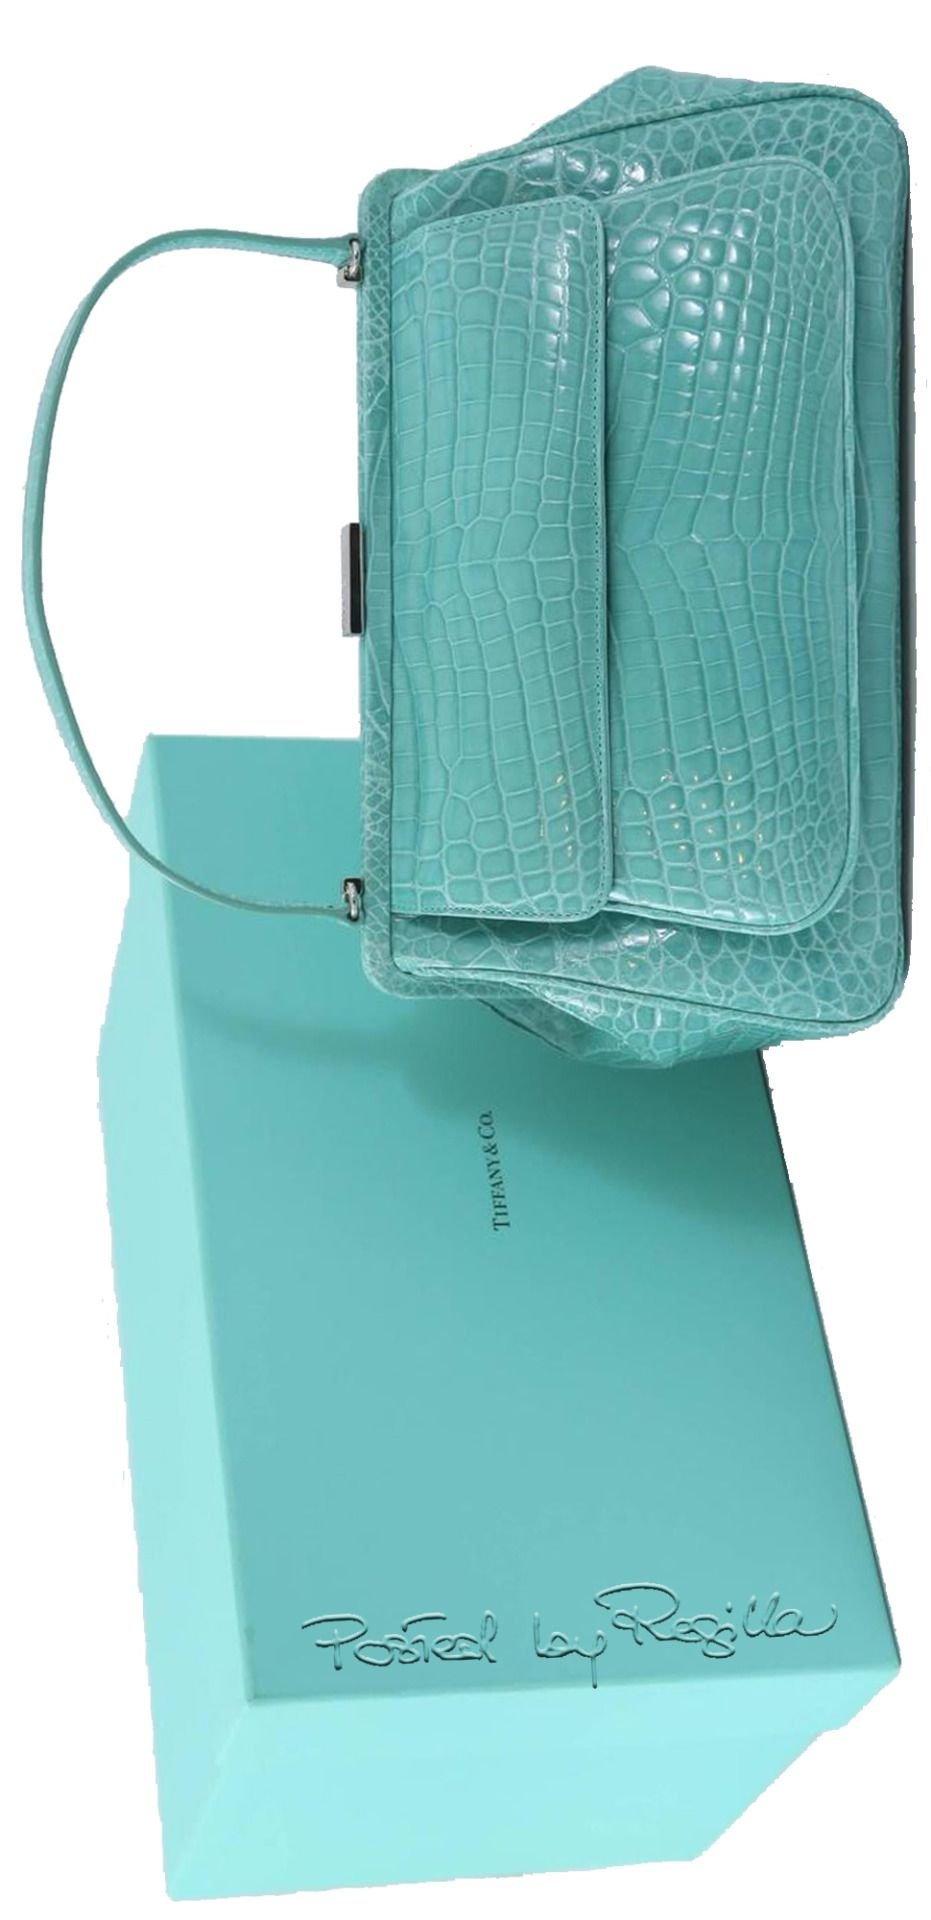 "d1f1e8443 Regilla ⚜ Tiffany & Co. ""Laurelton"" Crocodile Handbag in Tiffany Blue"